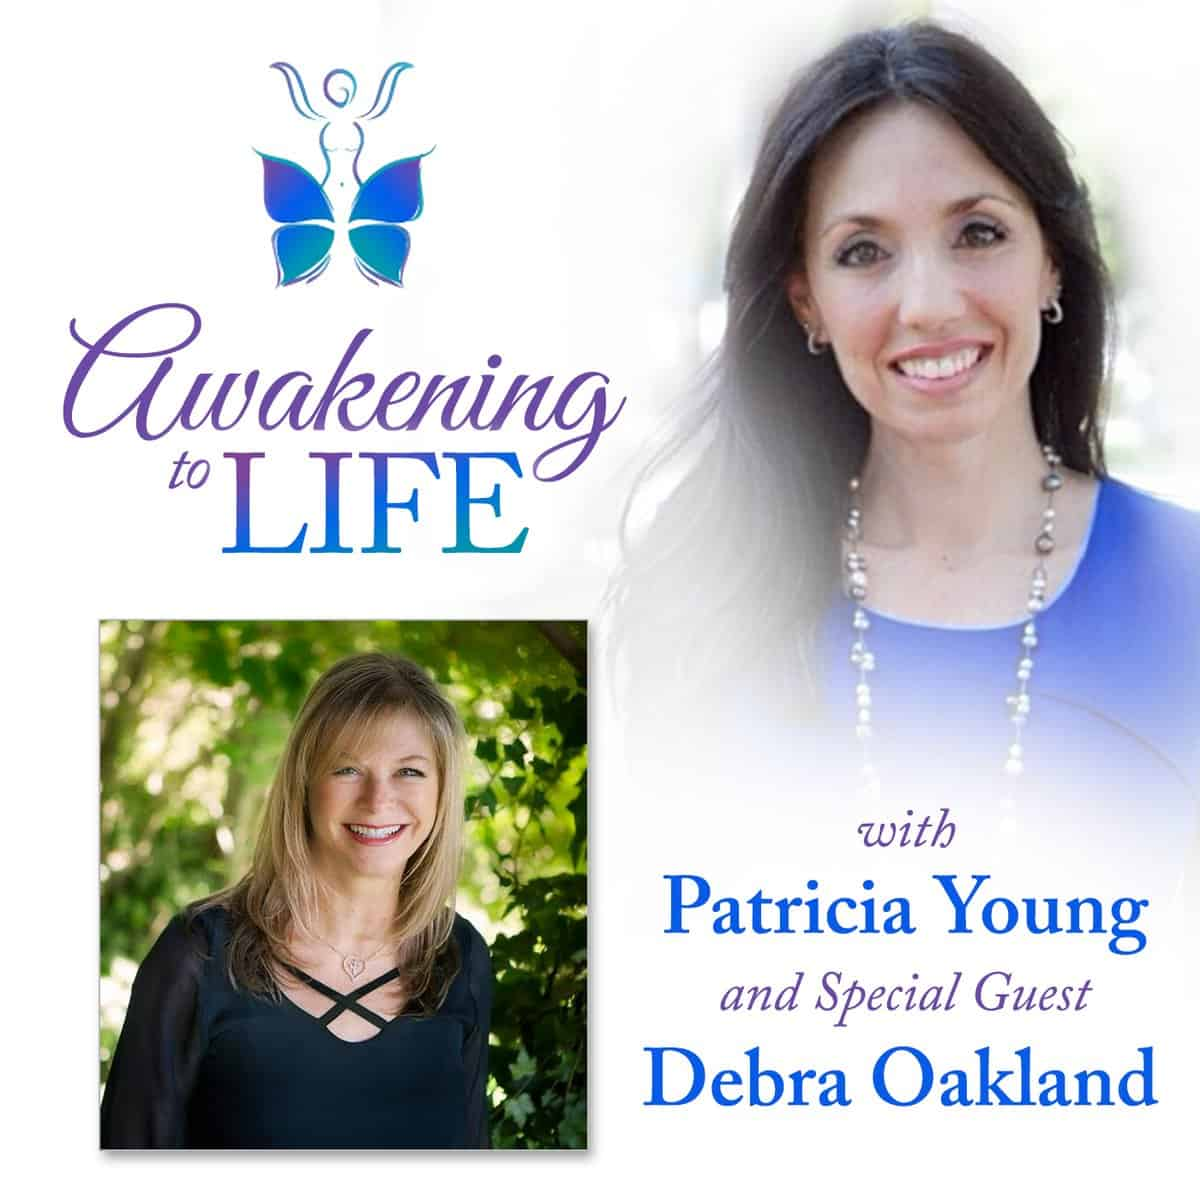 Living in Courage by Conscious Choice was the topic of conversation with @patriciayoung, who invited